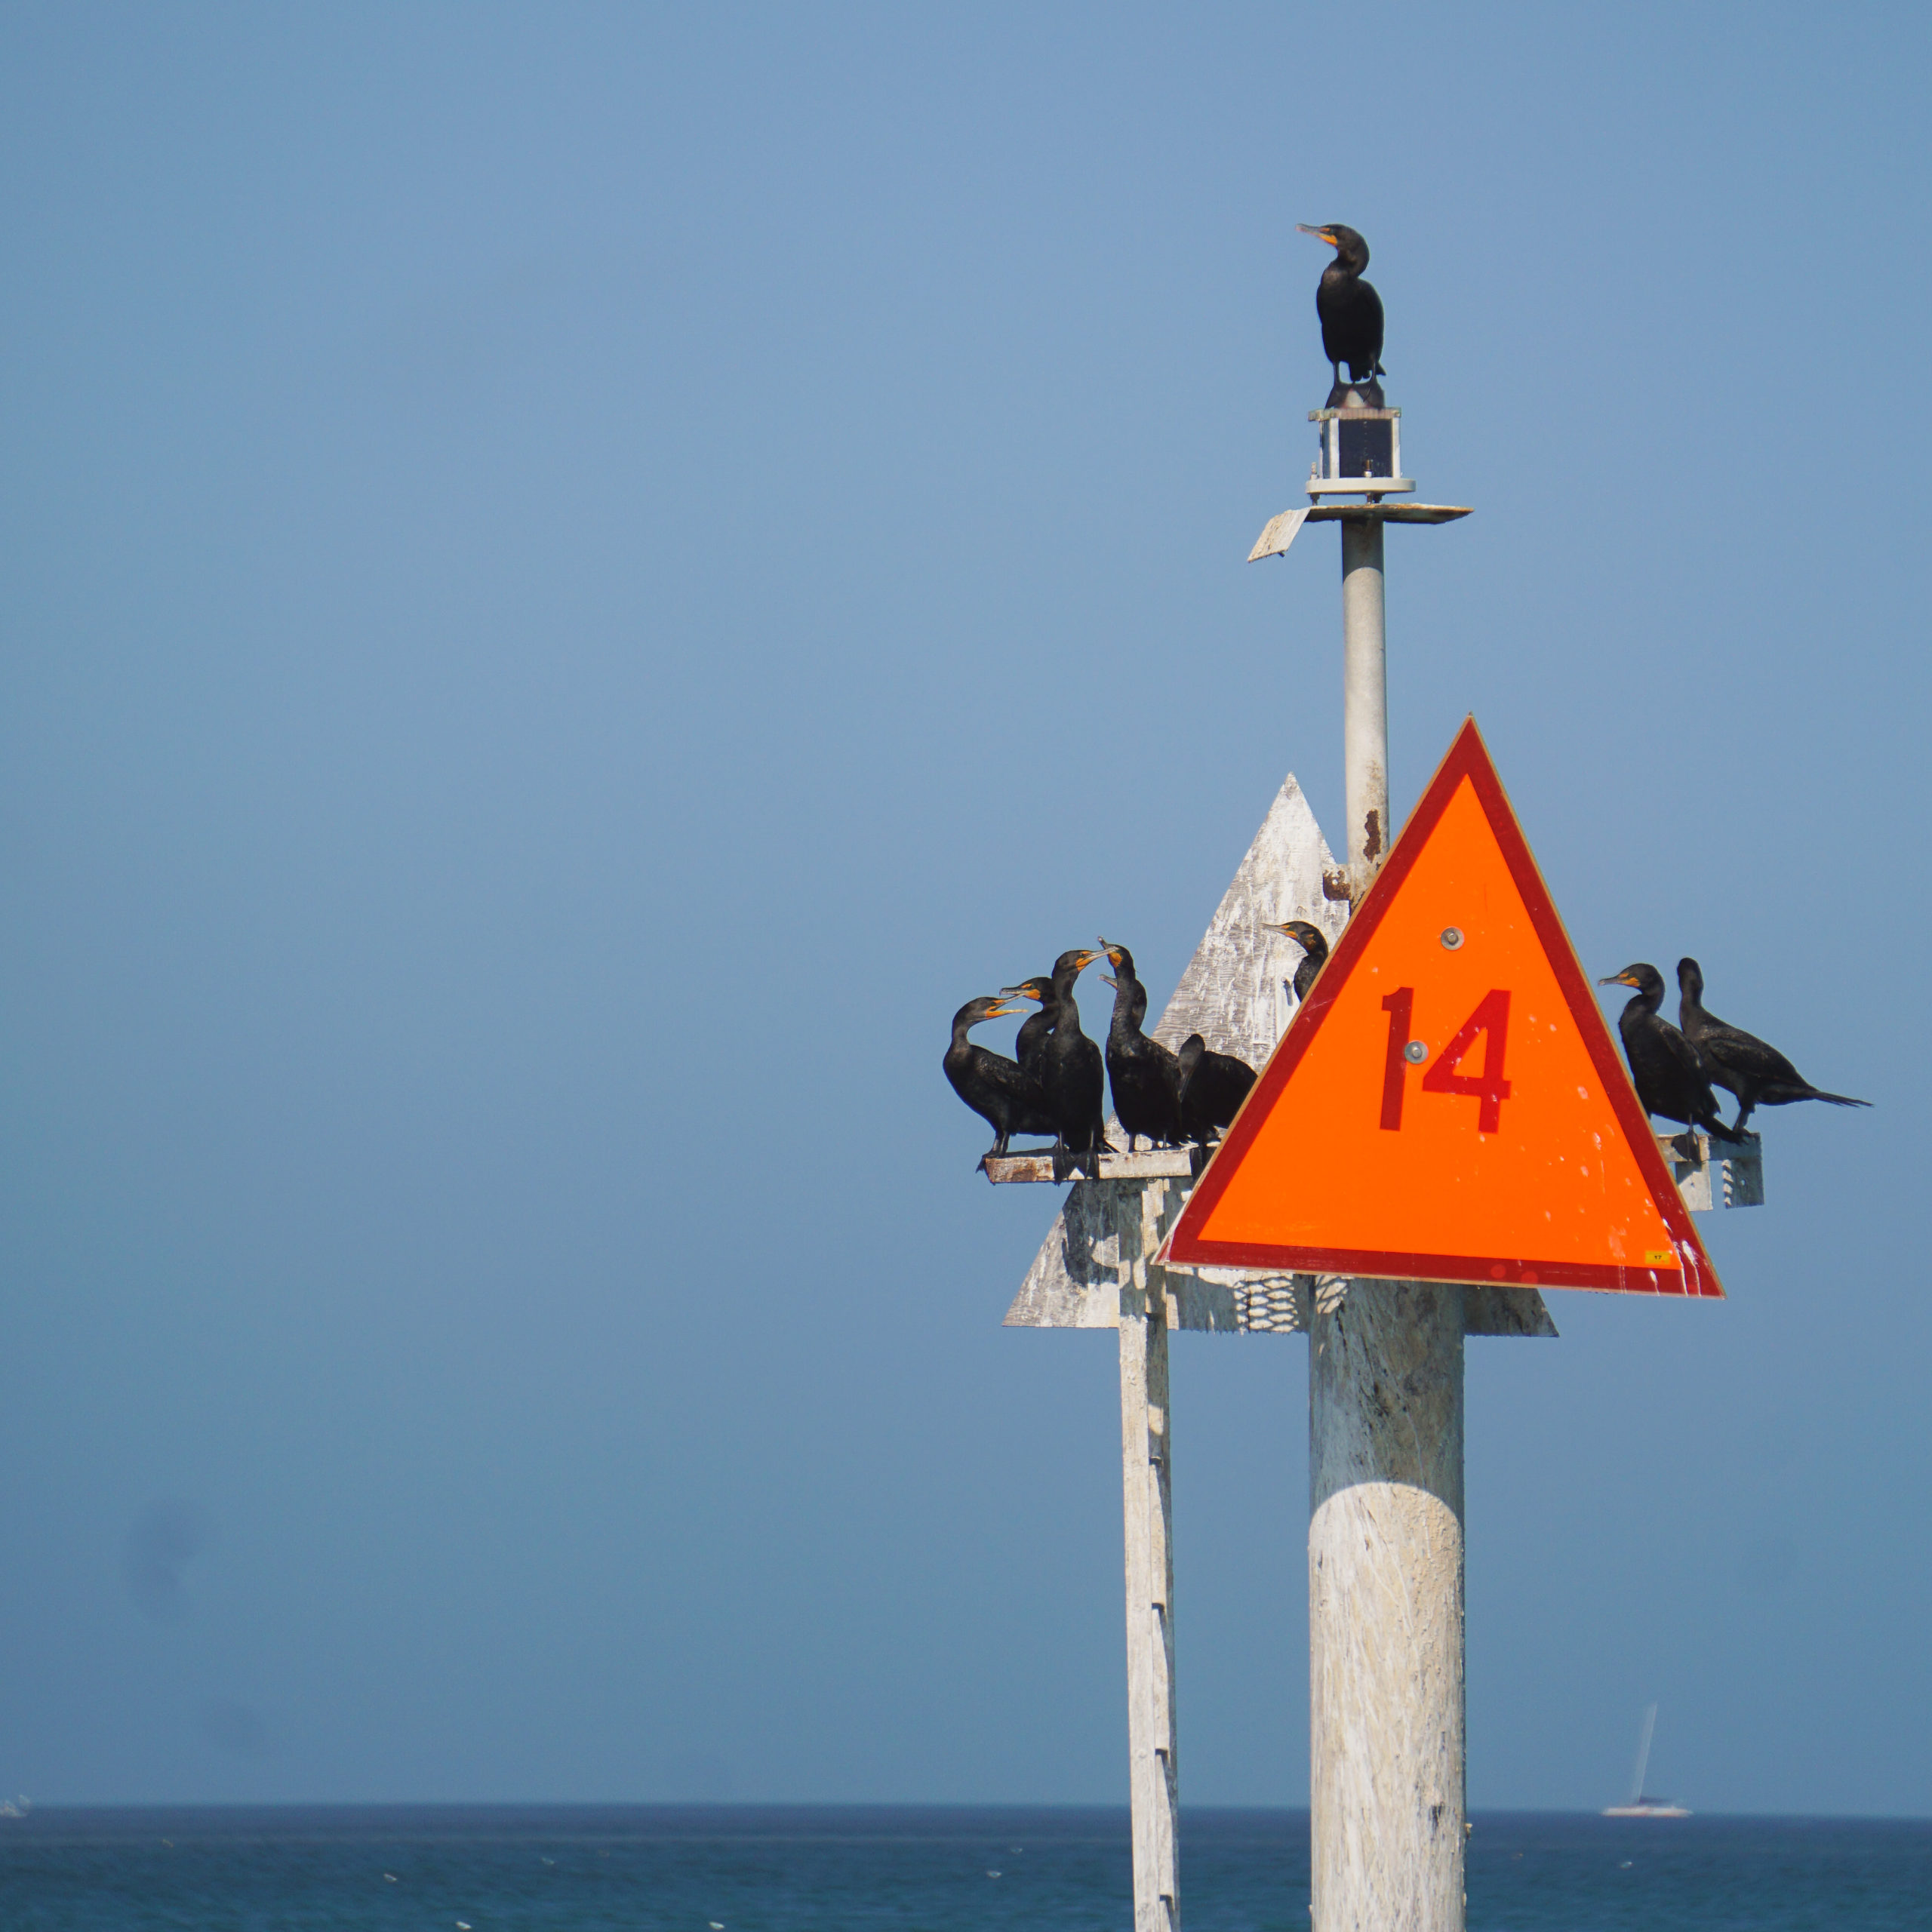 Flock of double-crested cormorants perched on a sign